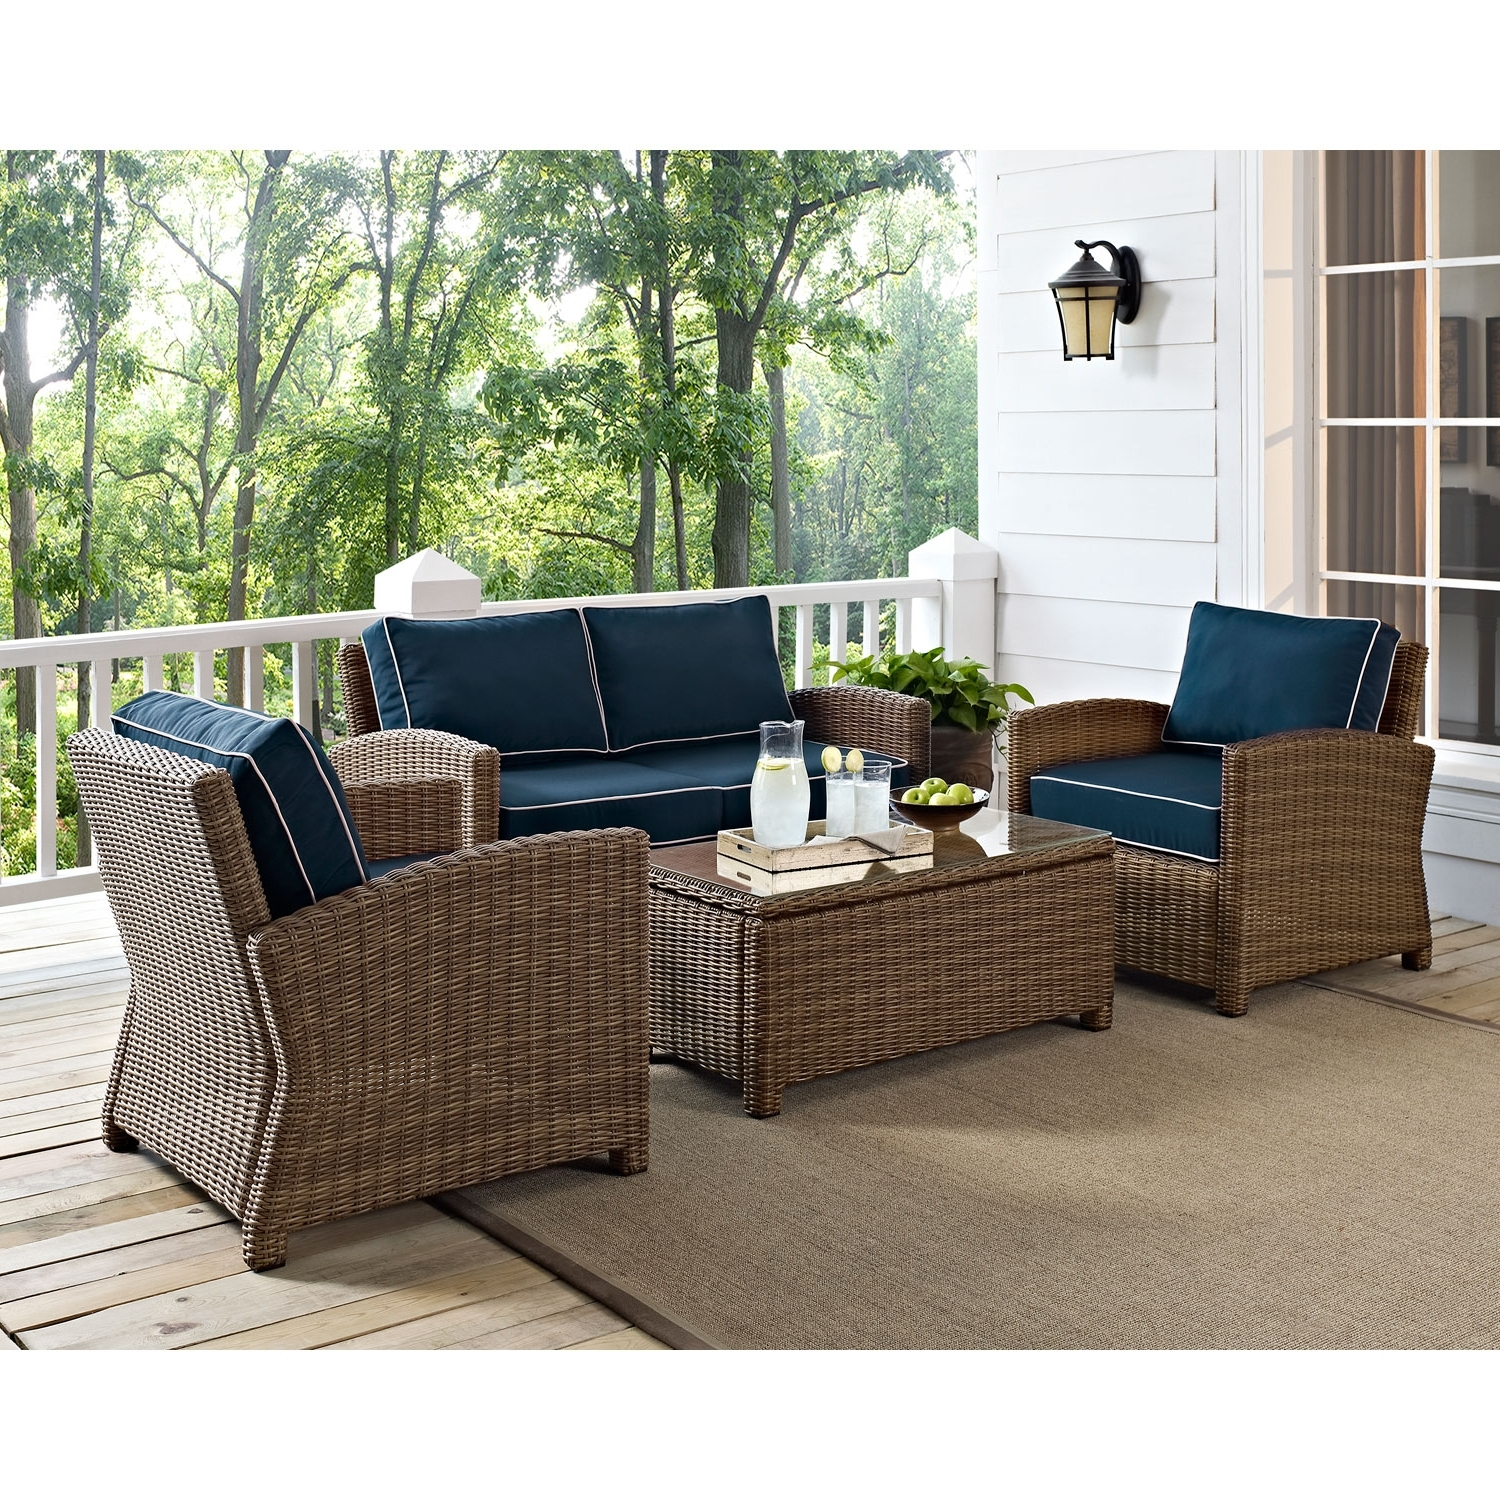 Fashionable Patio Conversation Sets Without Cushions With Regard To Crosley Furniture Bradenton 4 Piece Outdoor Wicker Seating Set With (View 8 of 15)